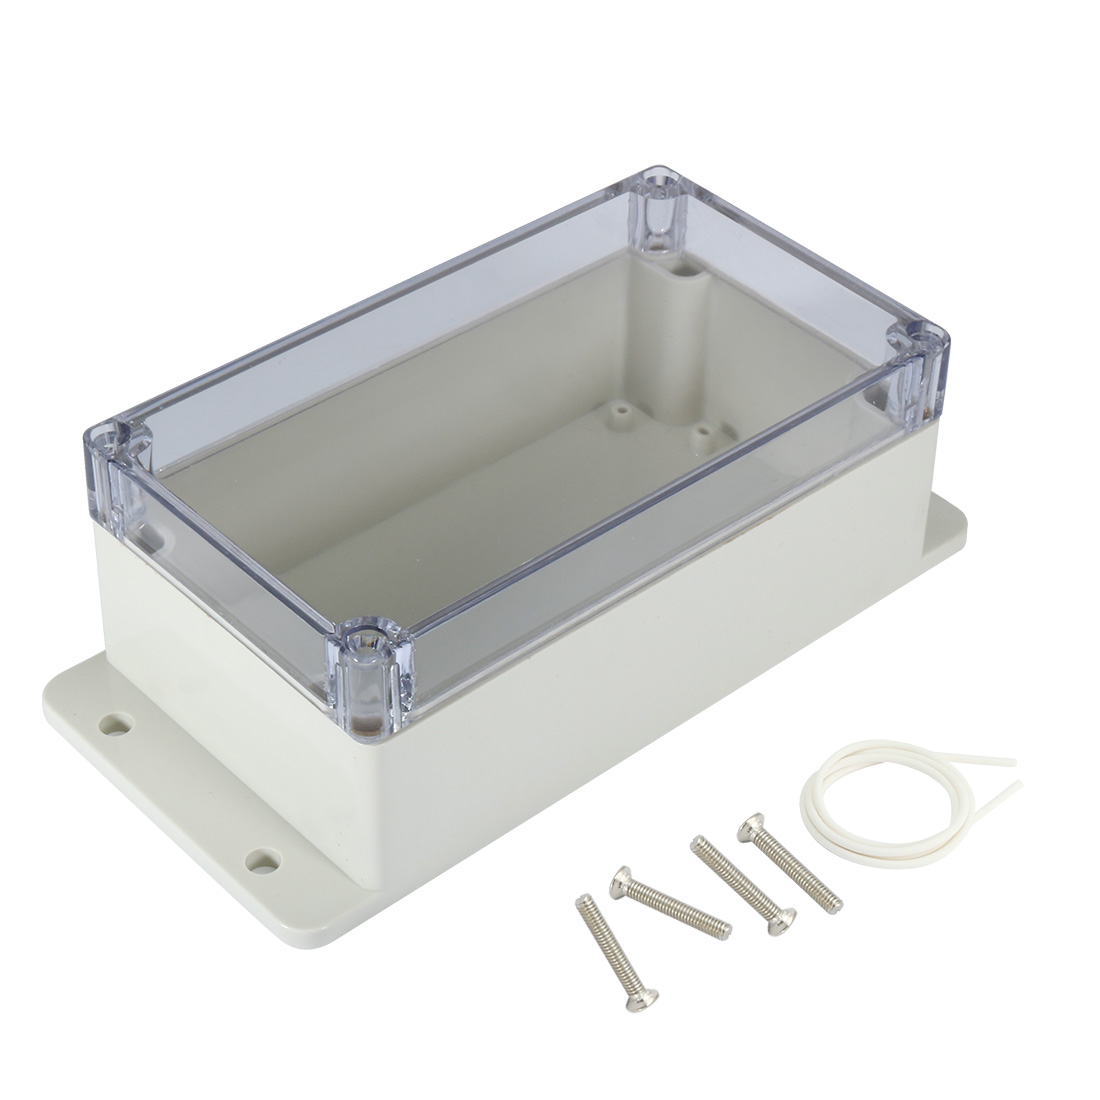 "6.2""x3.5""x2.5""(158mmx90mmx64mm) ABS Junction Box Universal Project Enclosure w PC Transparent Cover"